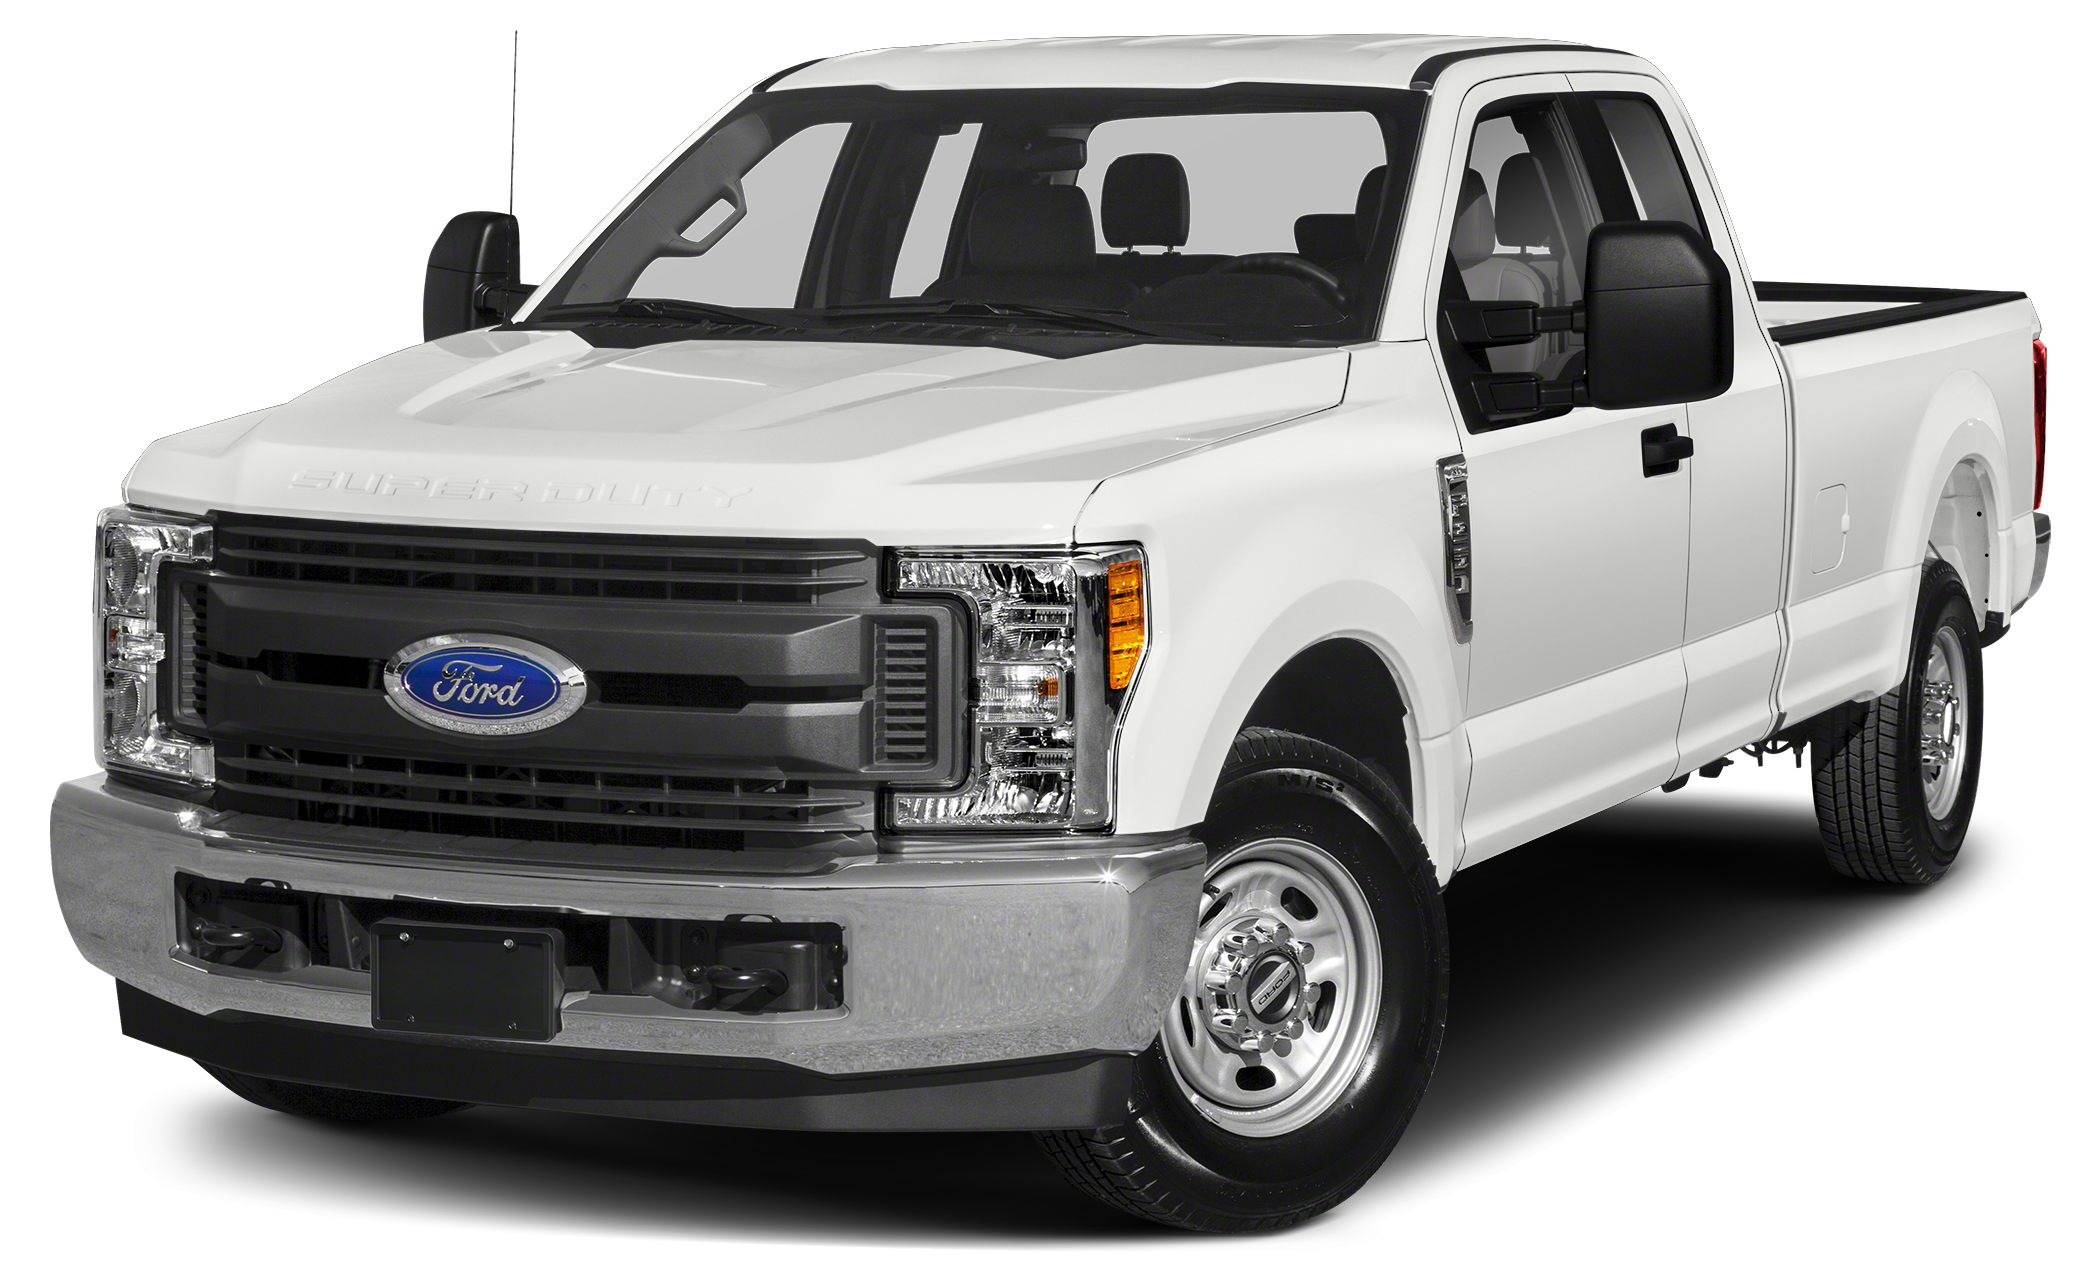 2017 Ford F-250 Super Duty At Mullinax there are NO DEALER FEES That SAVES you 800 over our larg